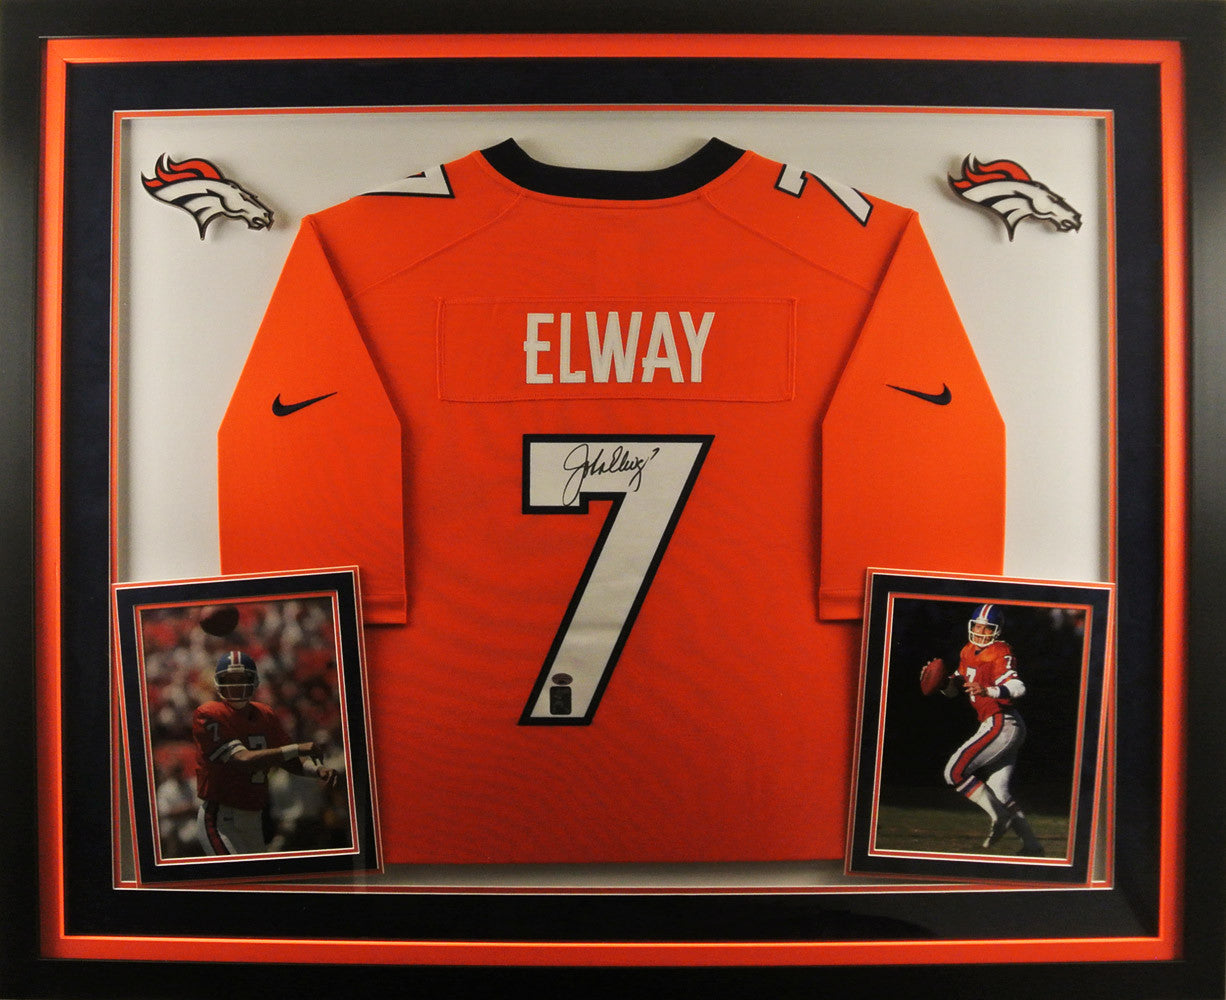 John Elway Deluxe Framed Signed Orange Jersey